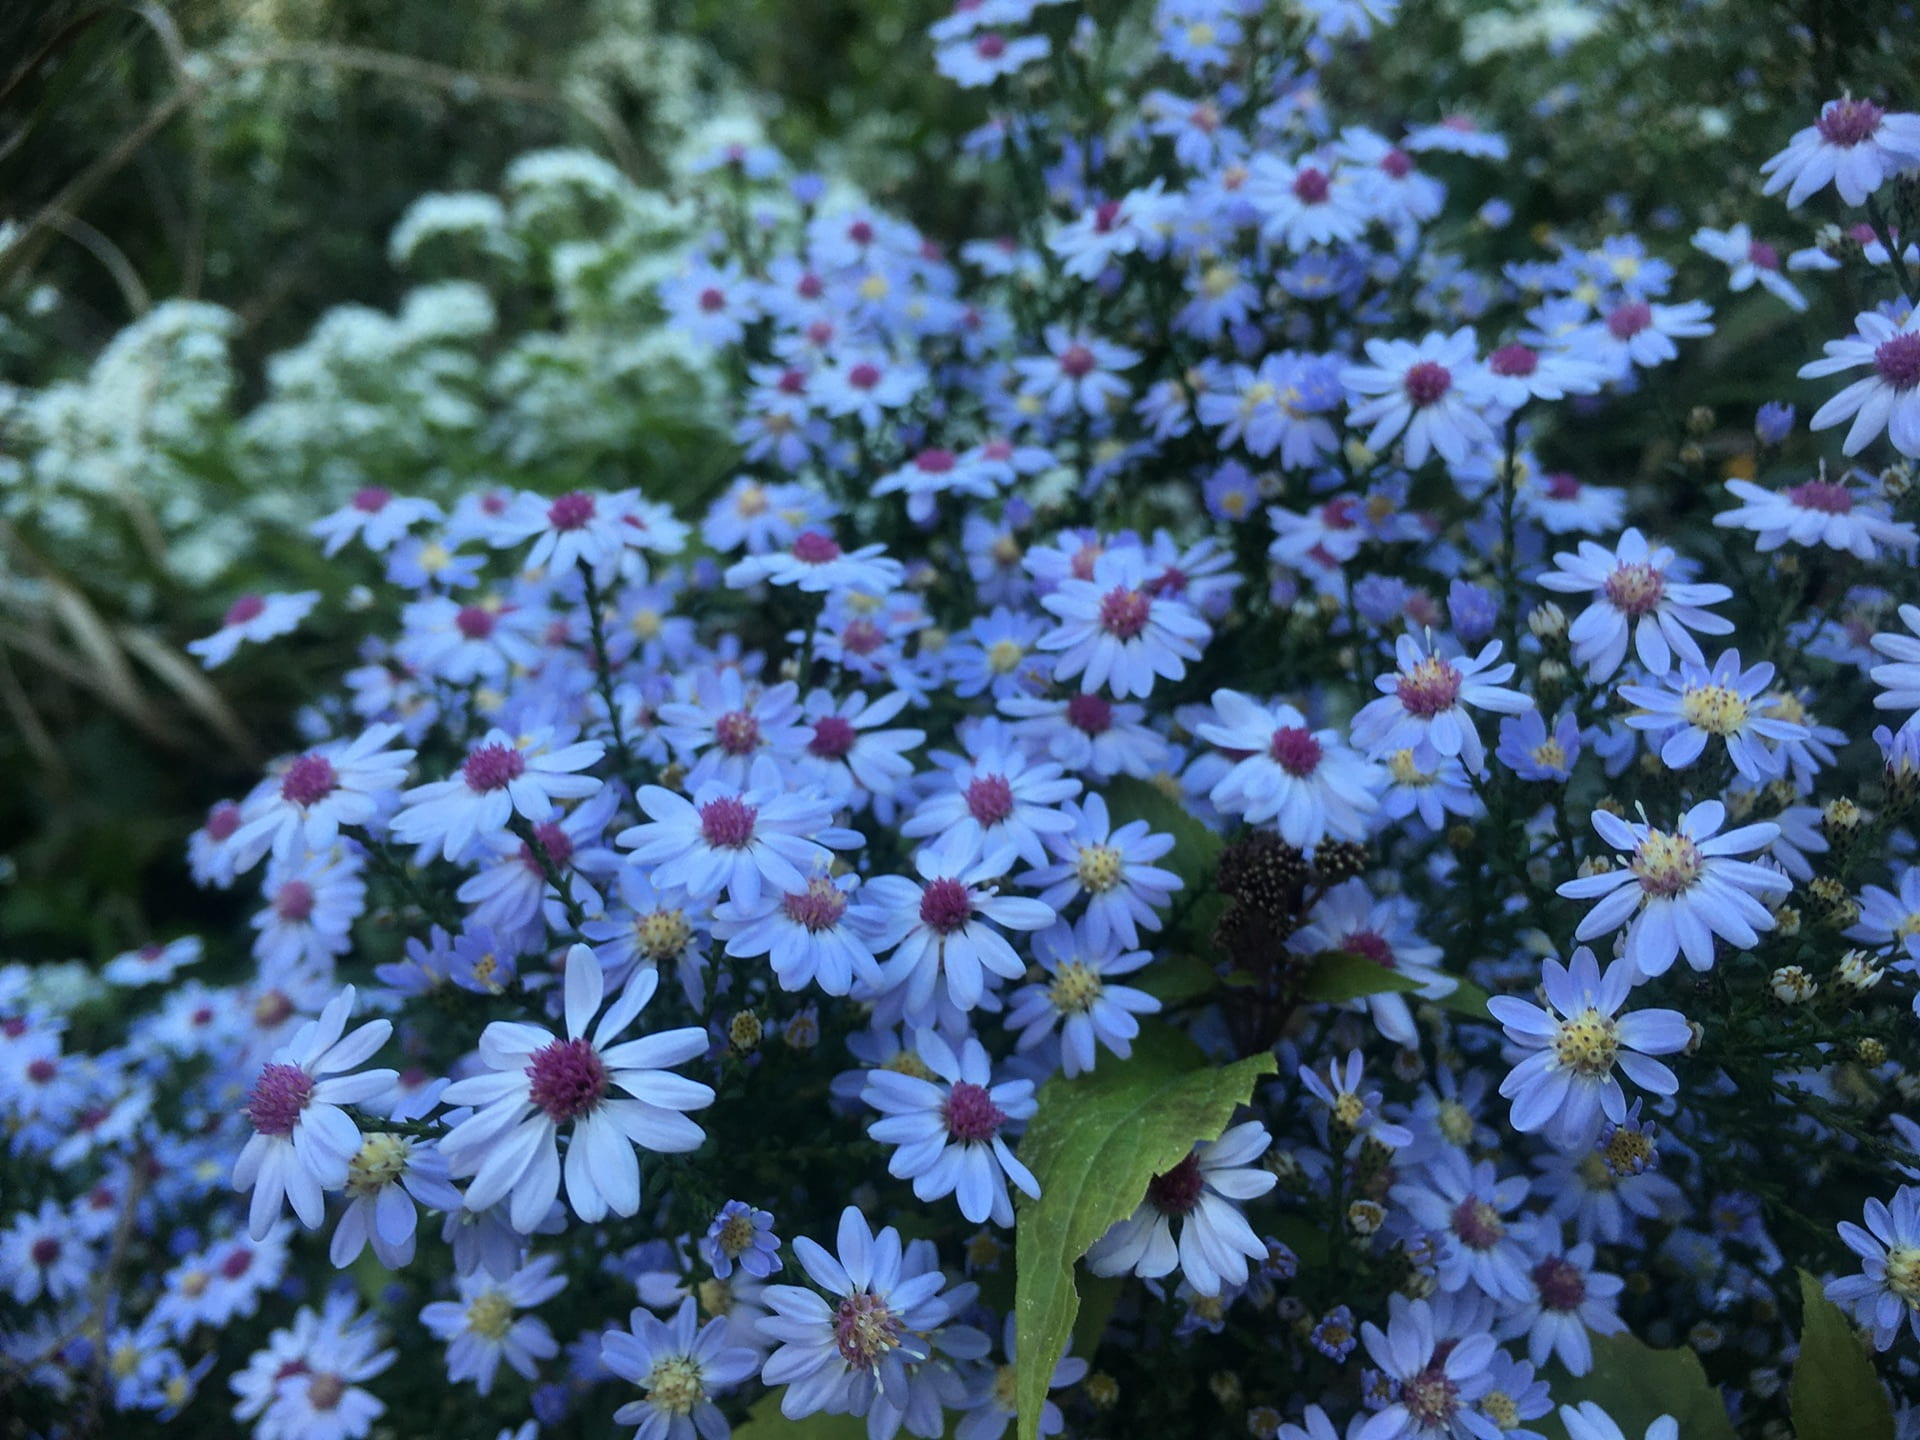 The small flowers of Symphyotrichum cordifolium putting on a show.